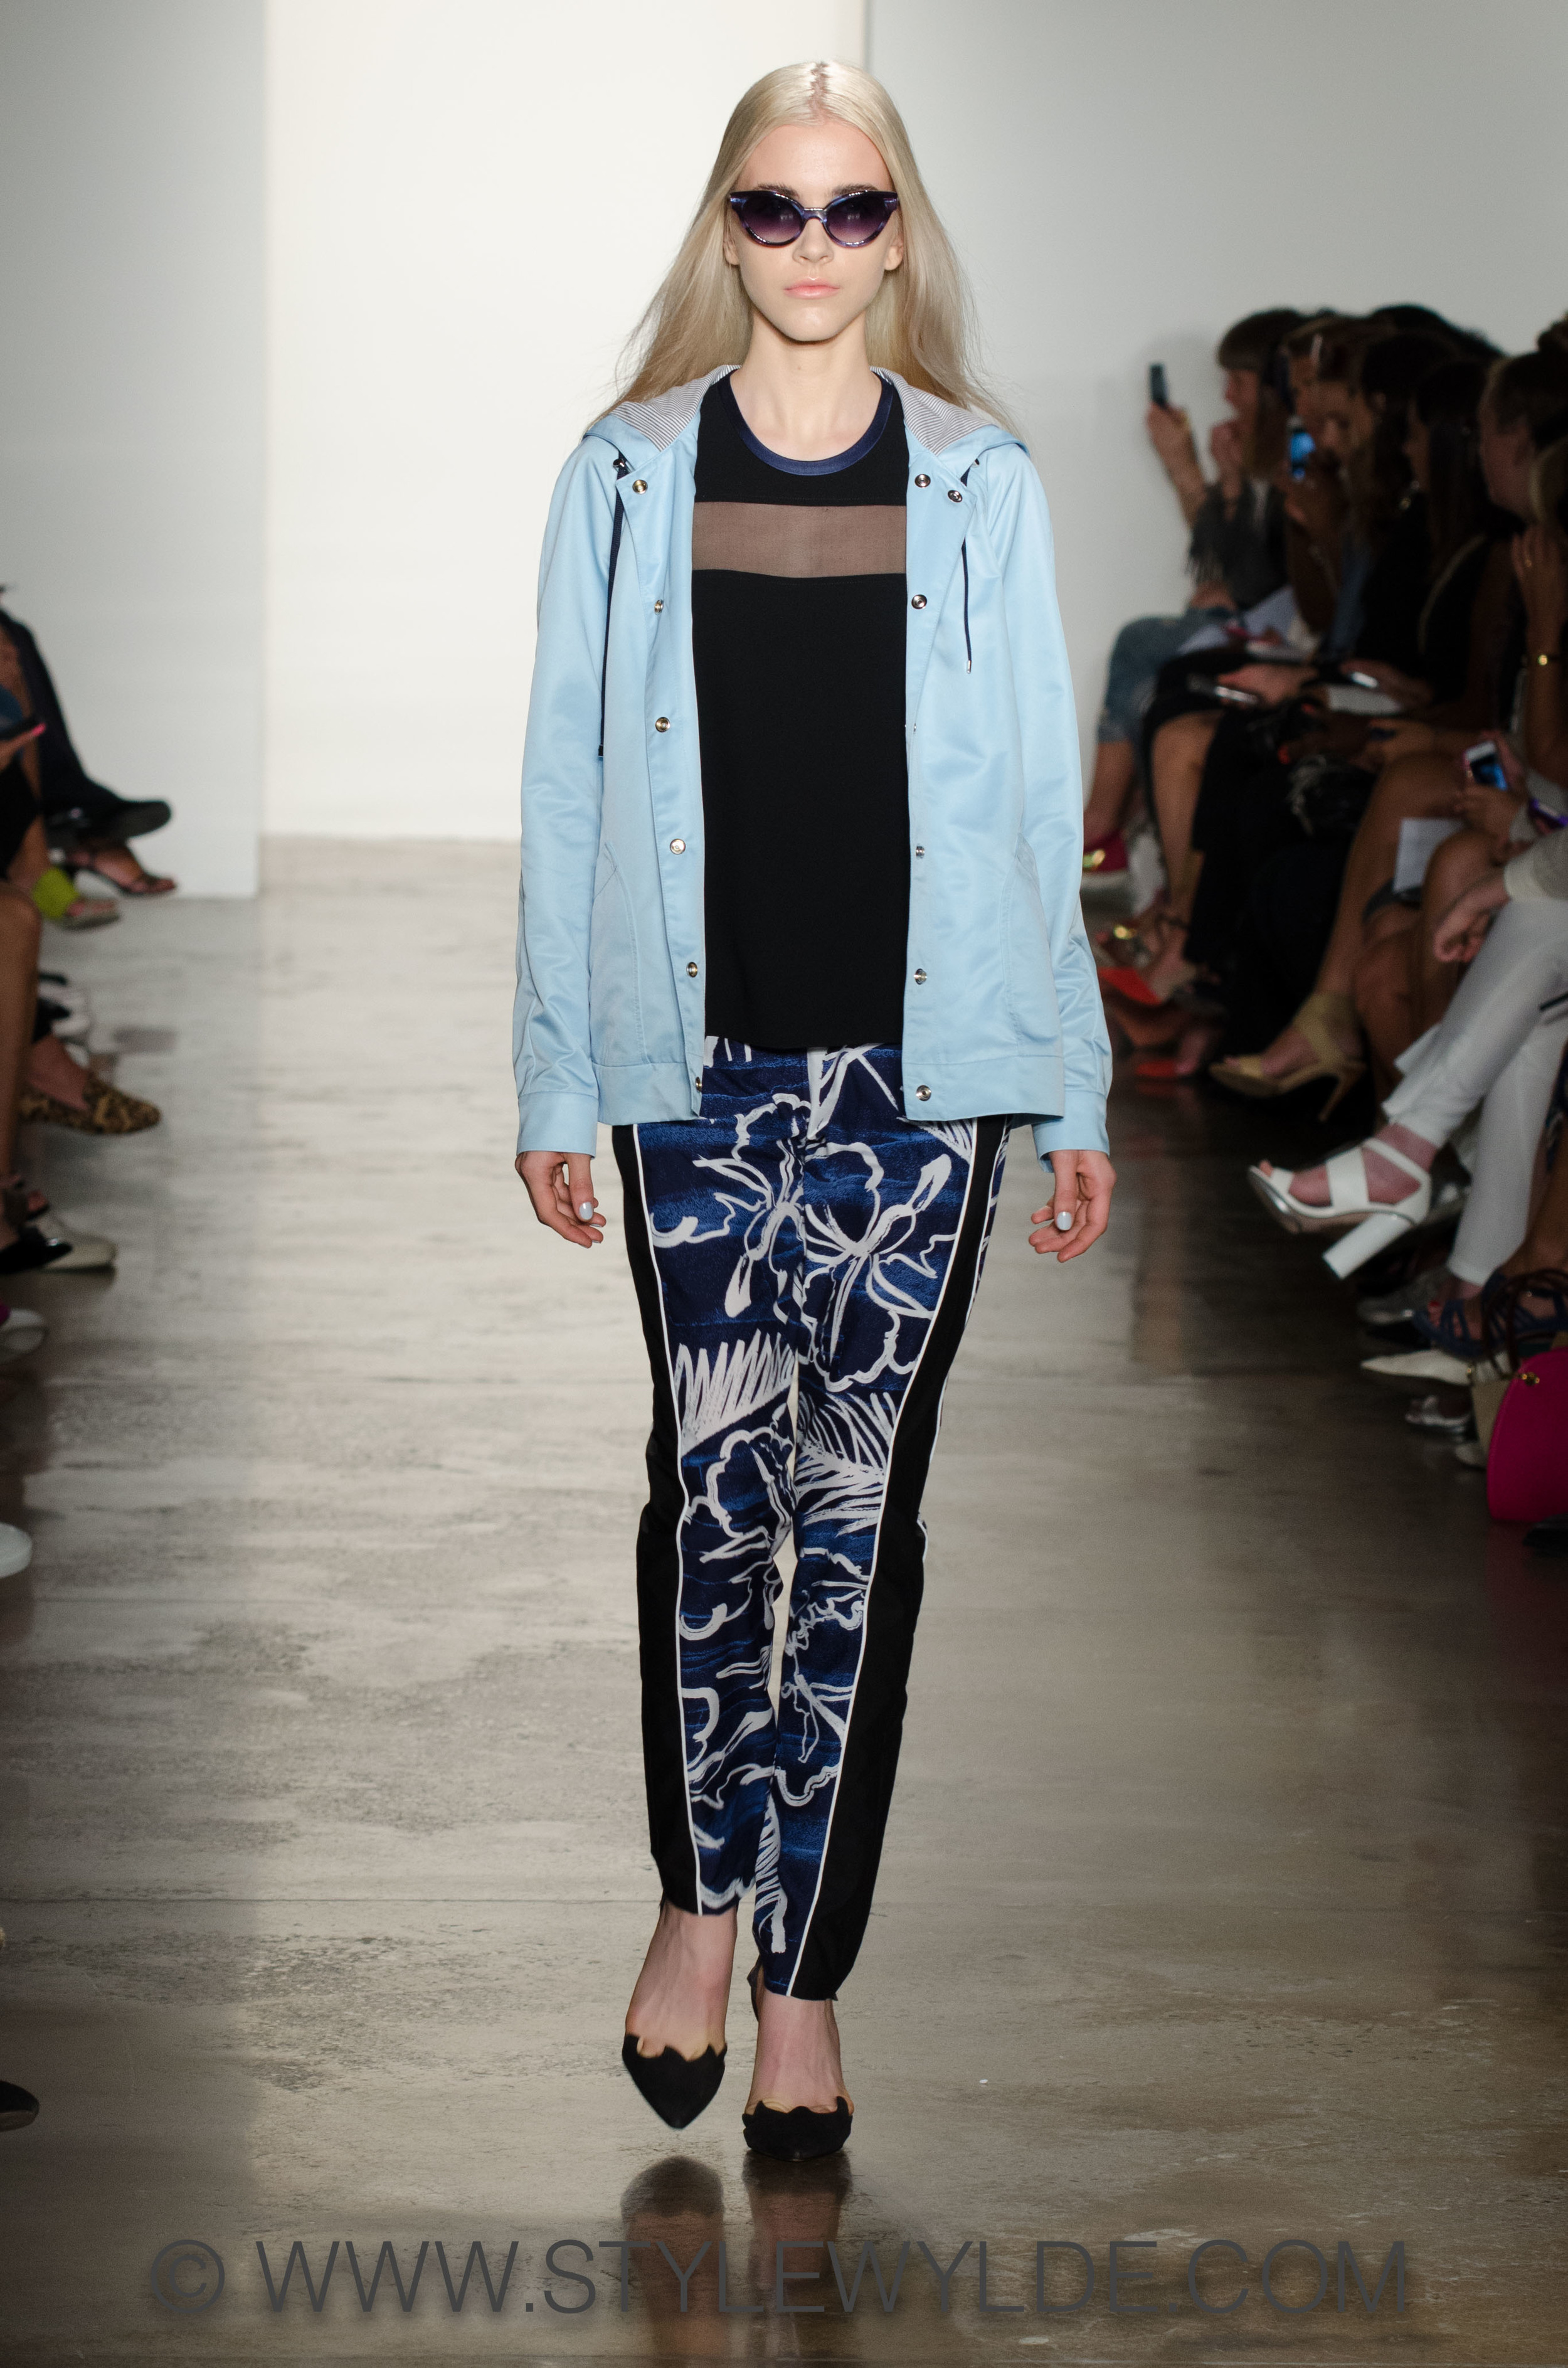 StyleWylde_Timo_SS15_FOH (22 of 38).jpg